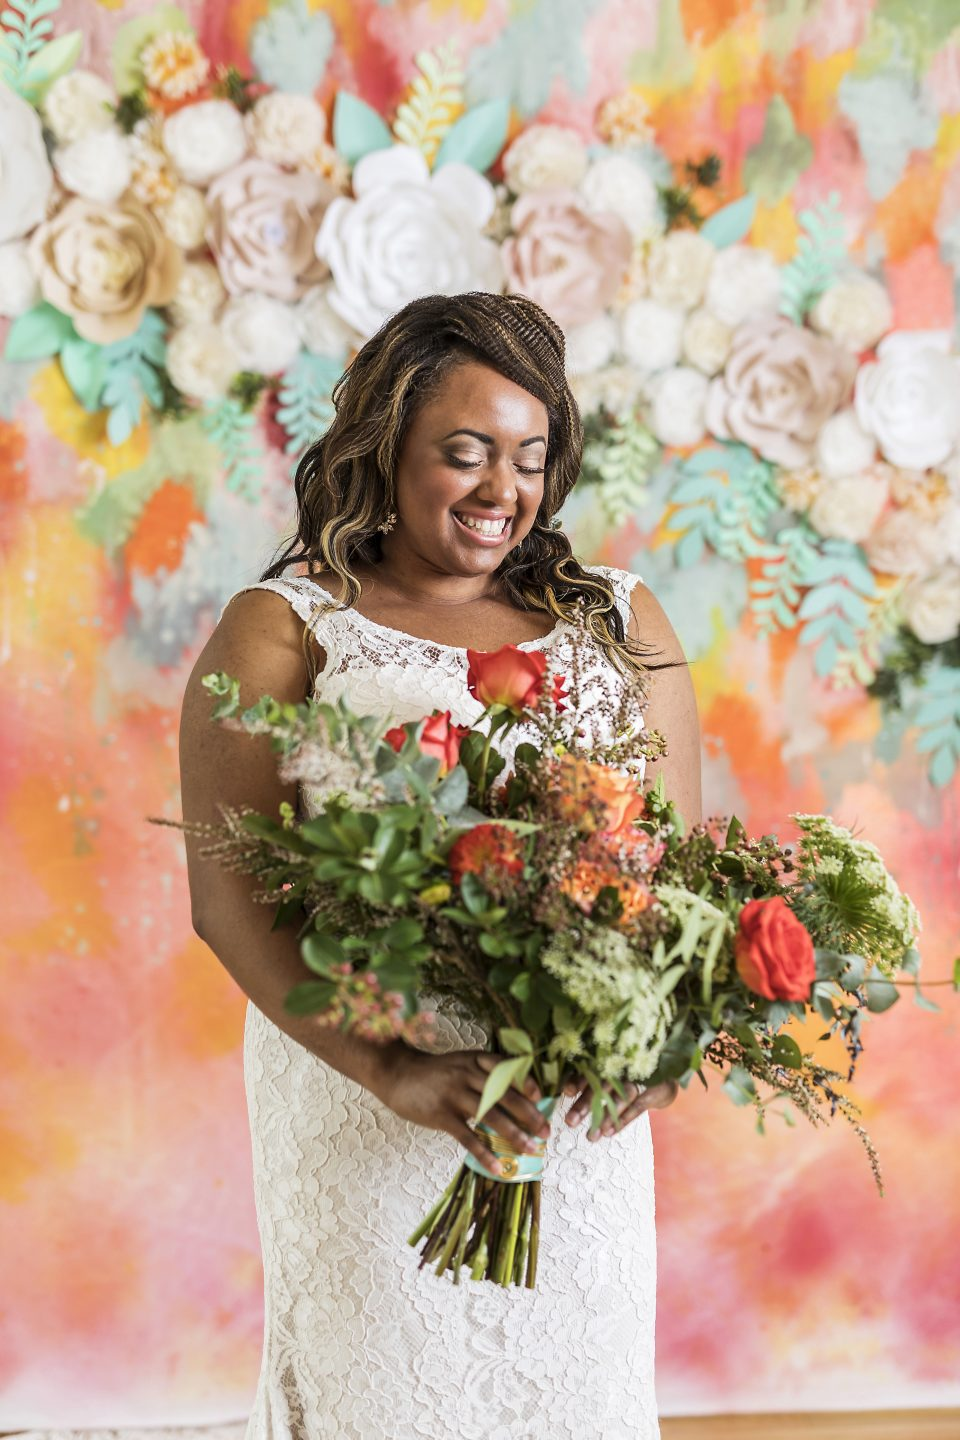 Milk & Honey Fashion Feature in Coastal Virginia Bride